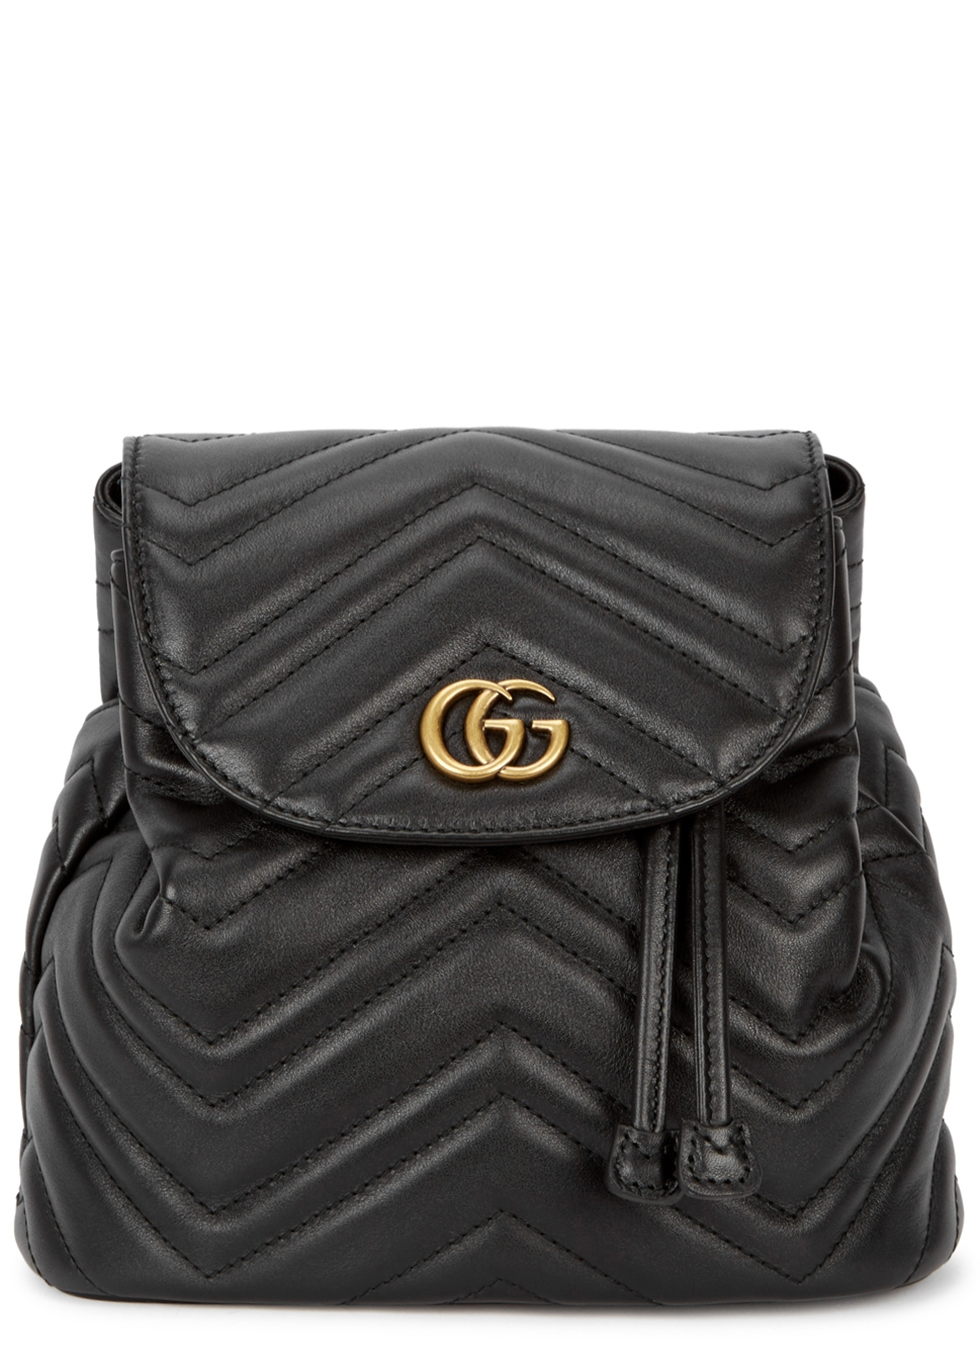 GG MARMONT BLACK LEATHER BACKPACK